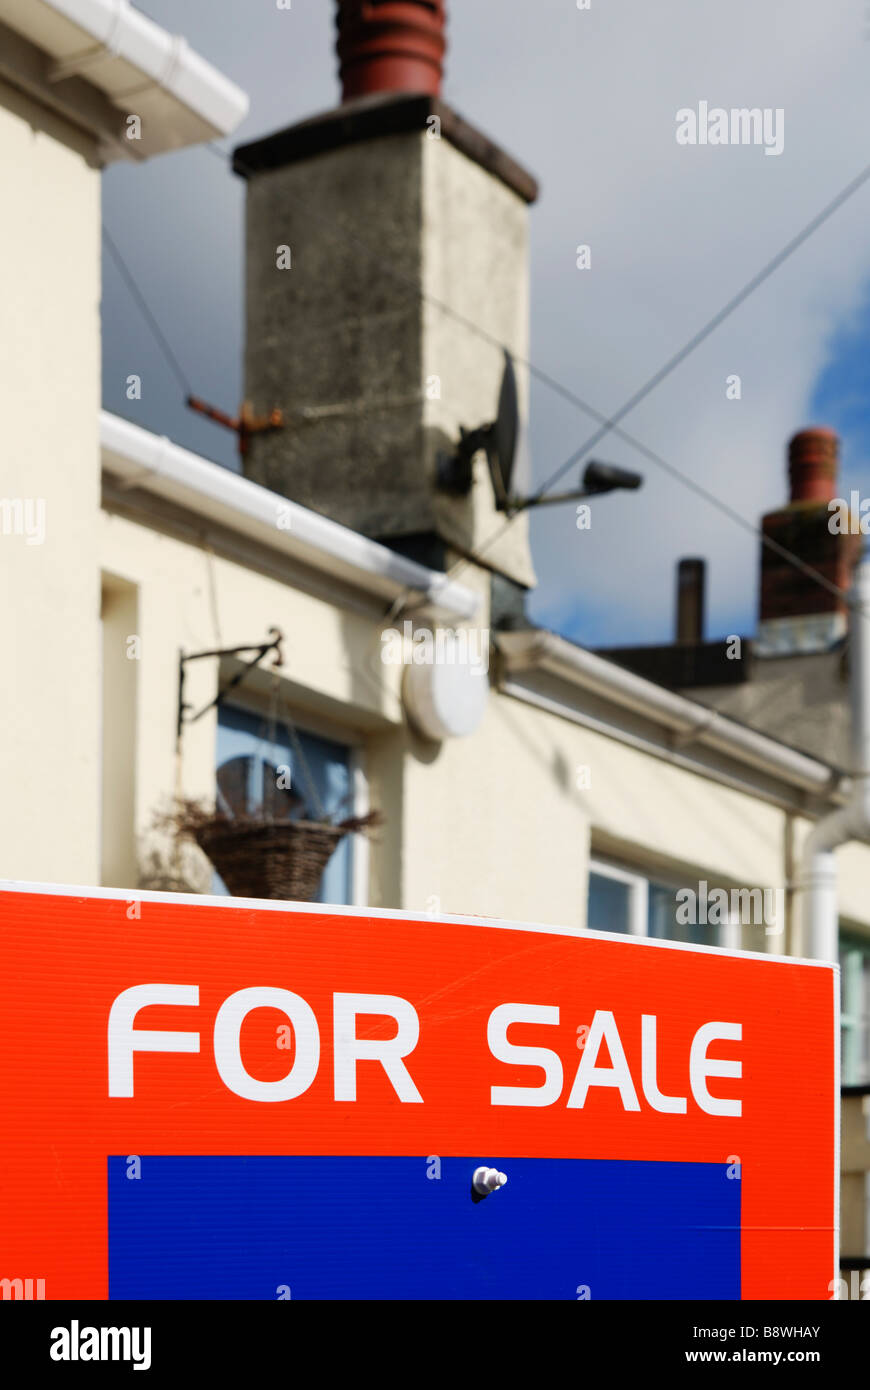 a for sale sign outside a property - Stock Image